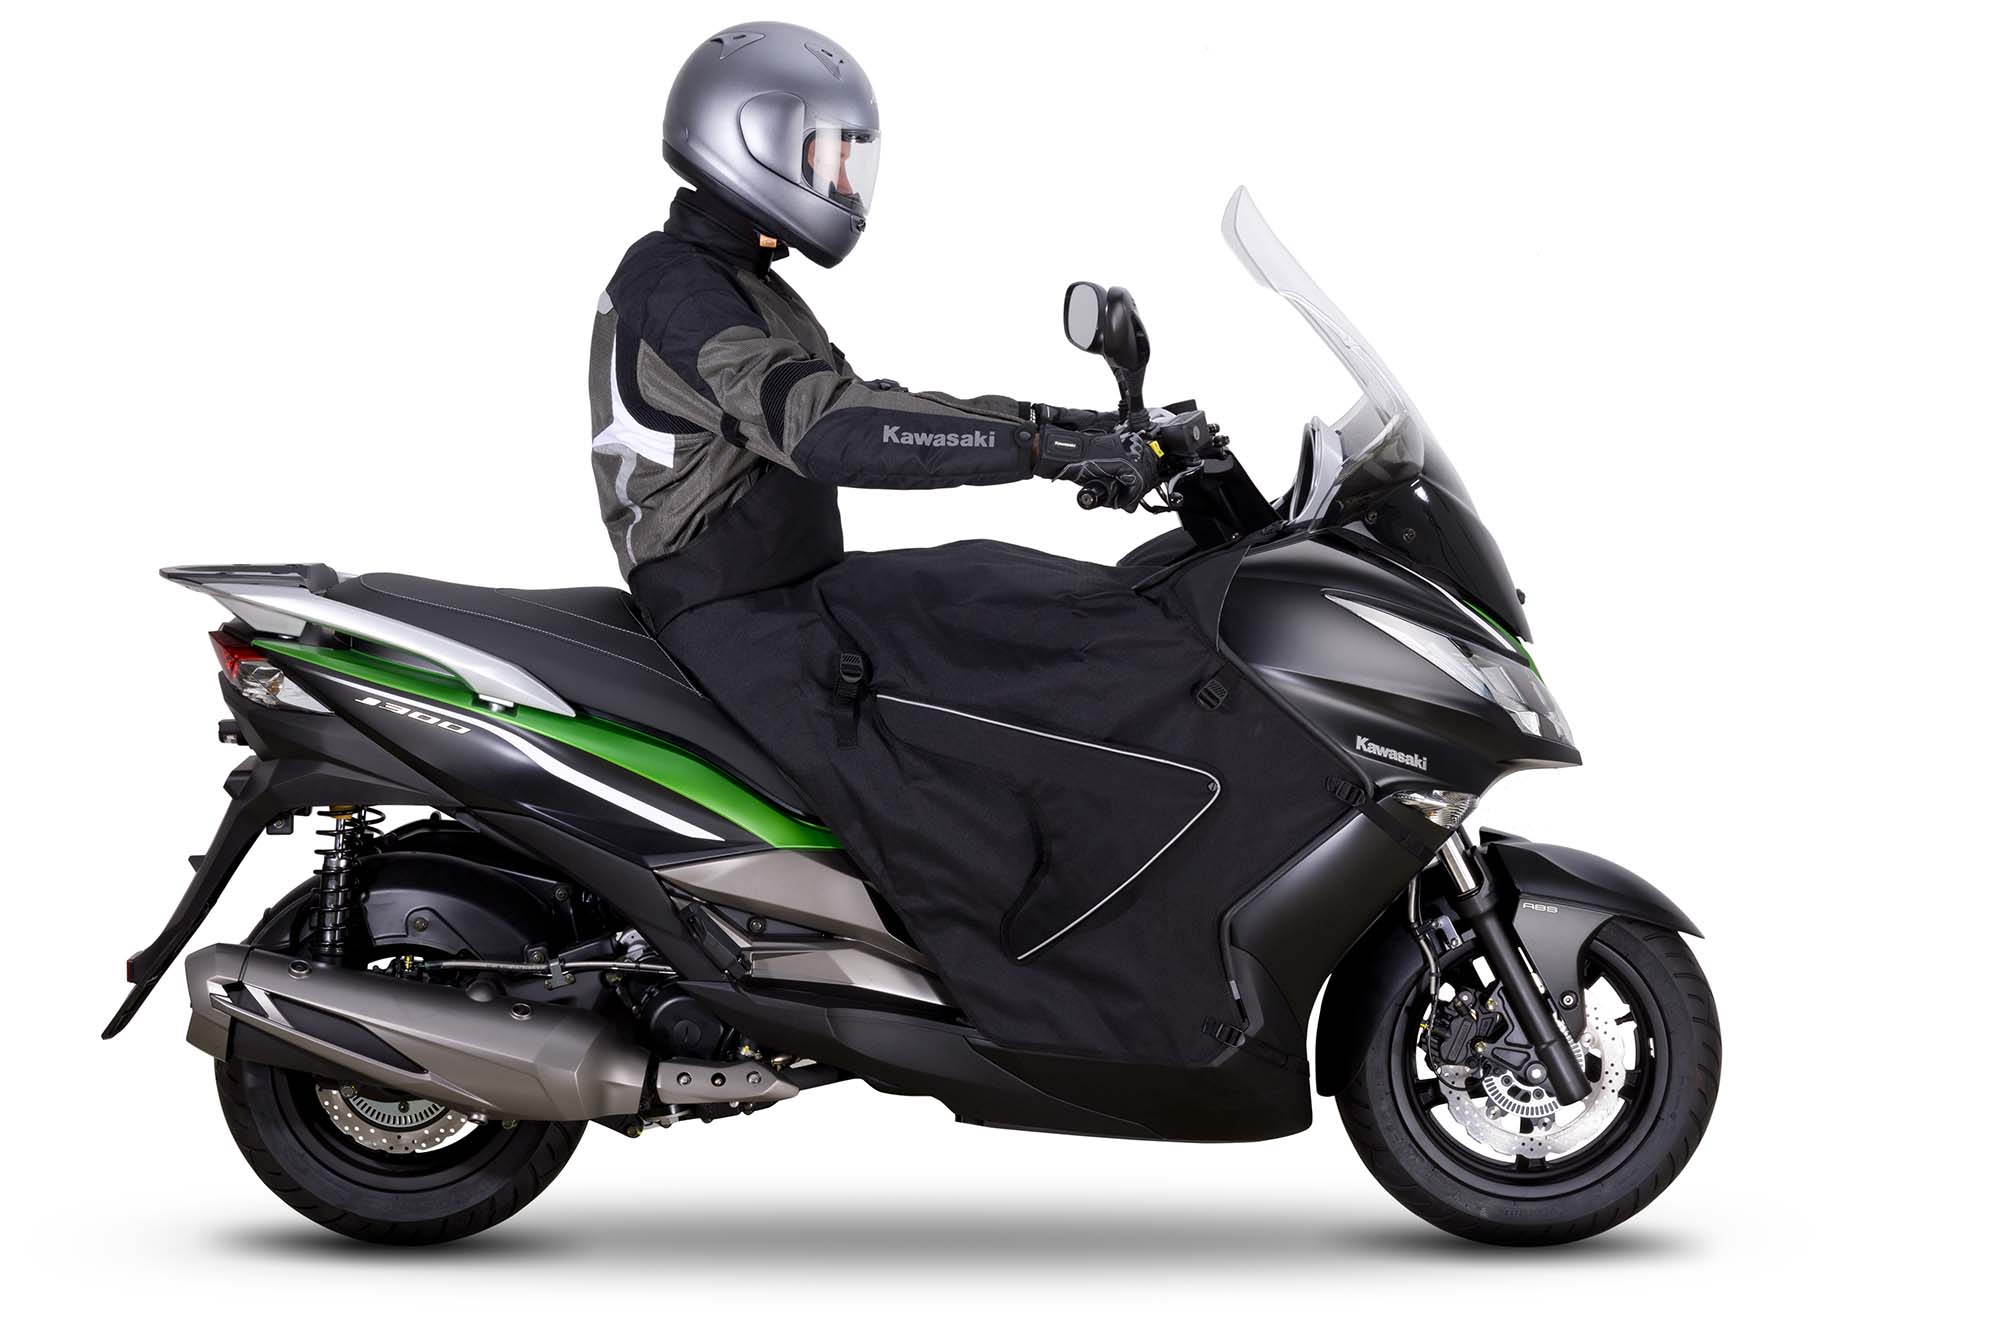 2014 Kawasaki J300 A Maxi Scooter From Team Green